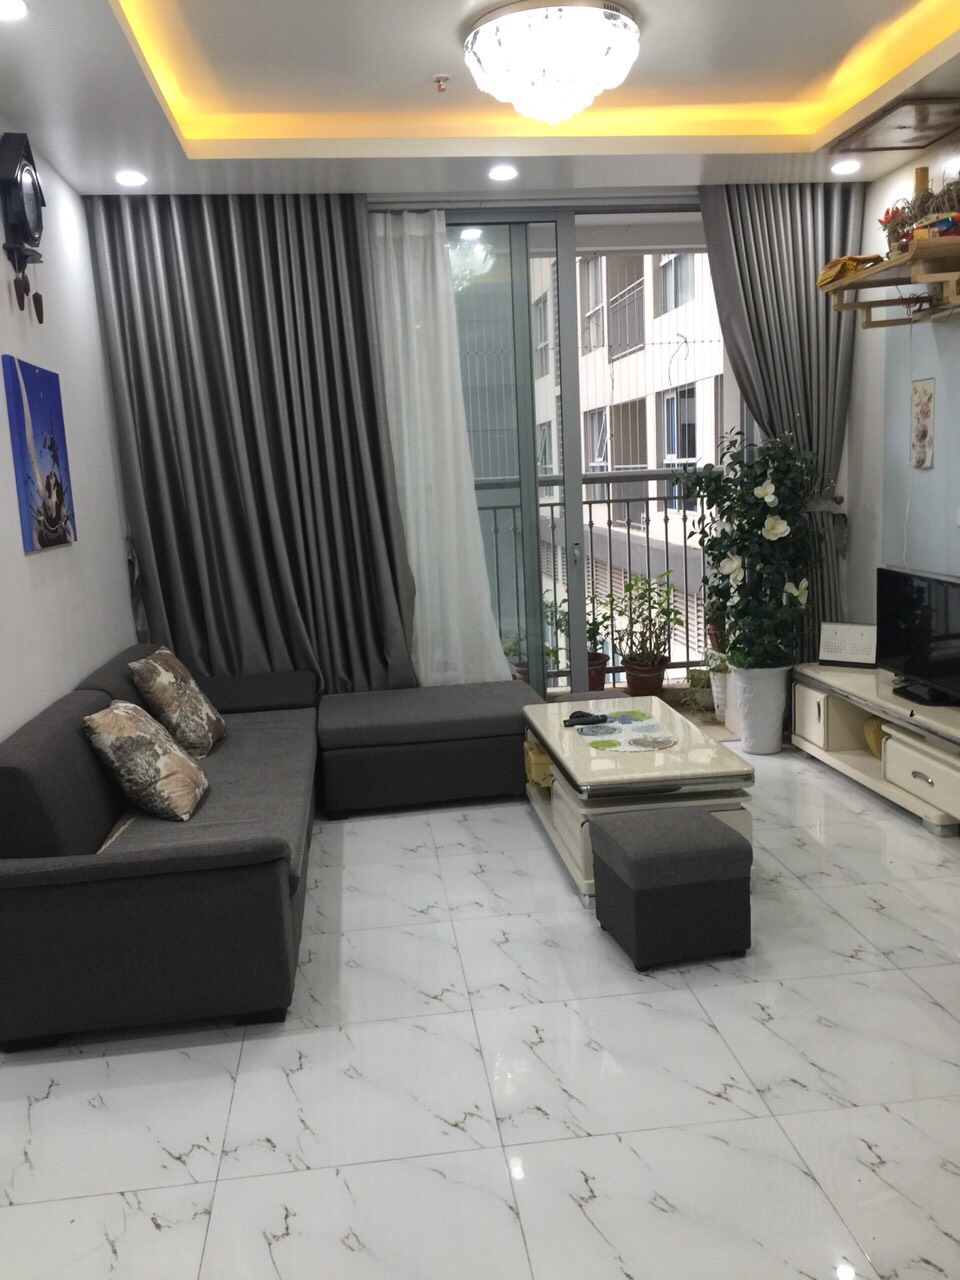 Two bedroom apartment rental in Vinhomes Gadernia, Ham Nghi str, Tu Liem